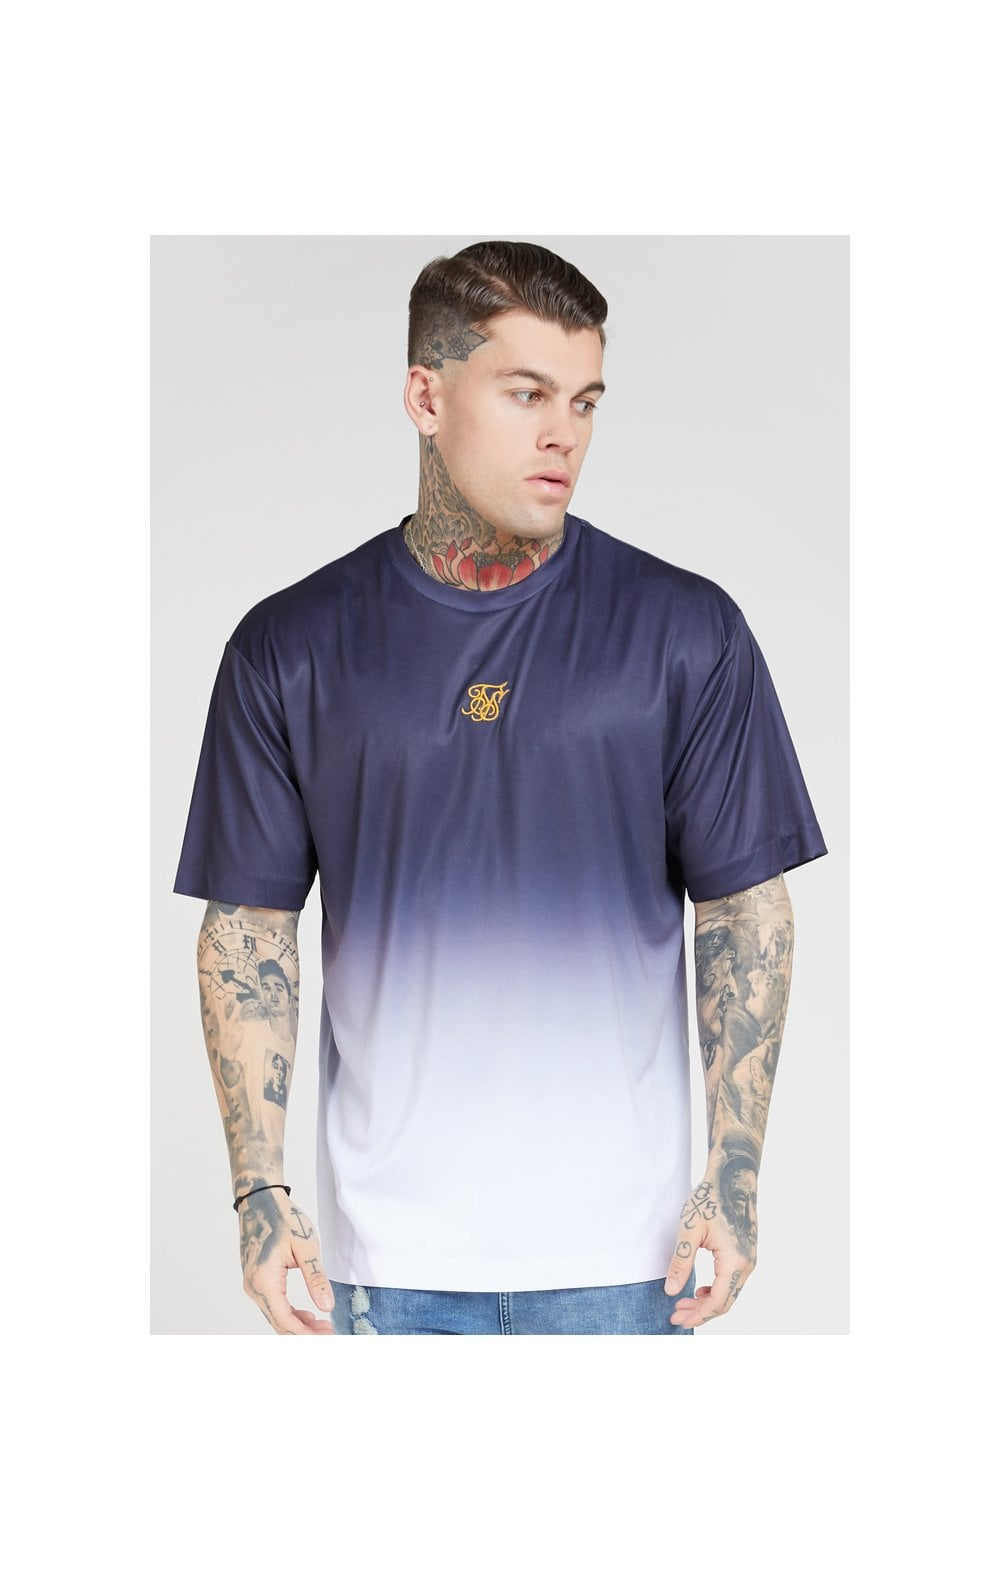 SikSilk S/S Essential Tee - Navy & White